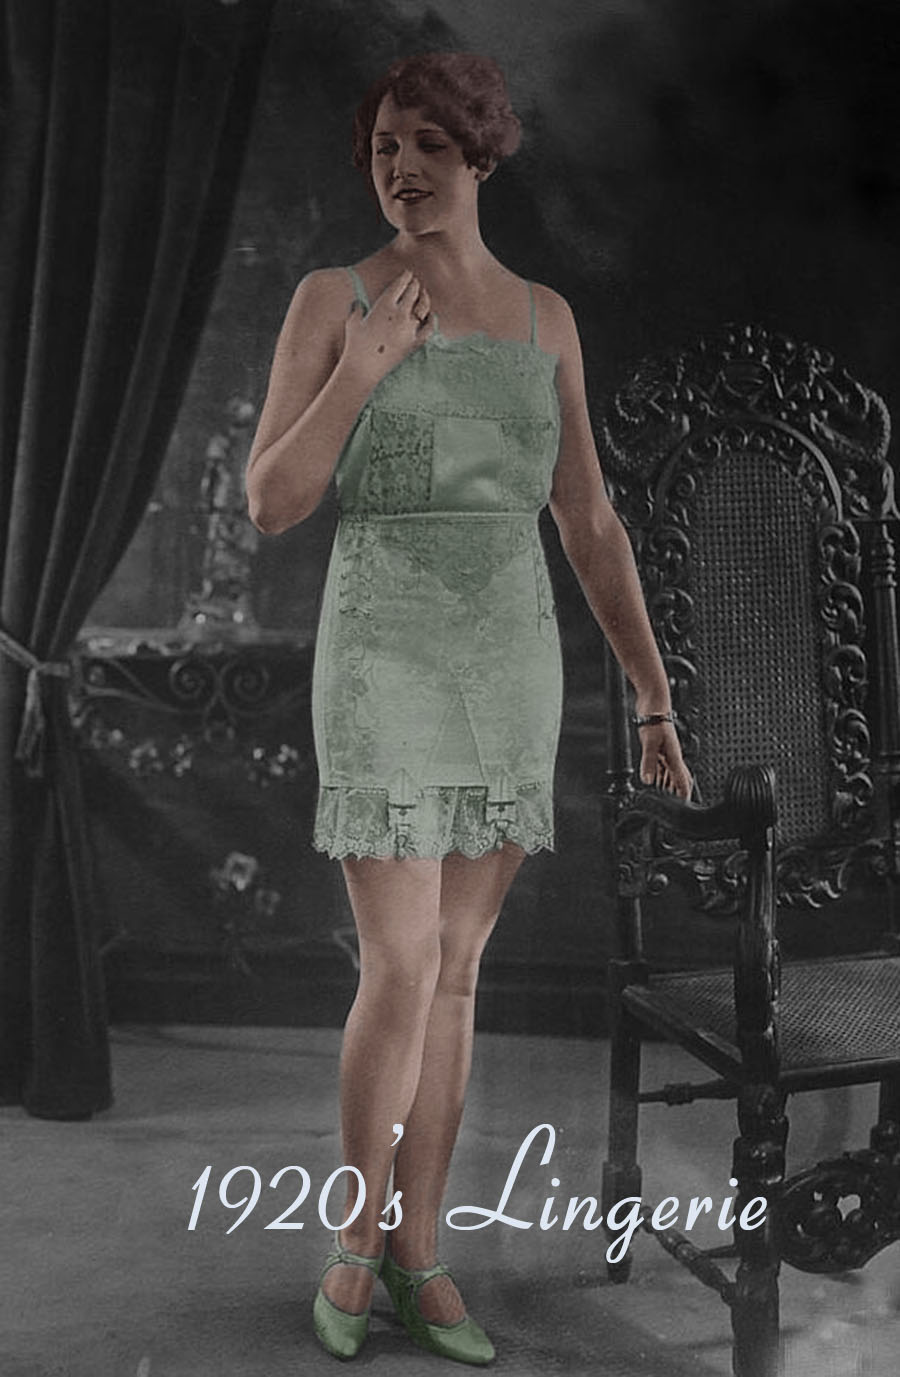 1920s fashion - womens dress and style - lingerie